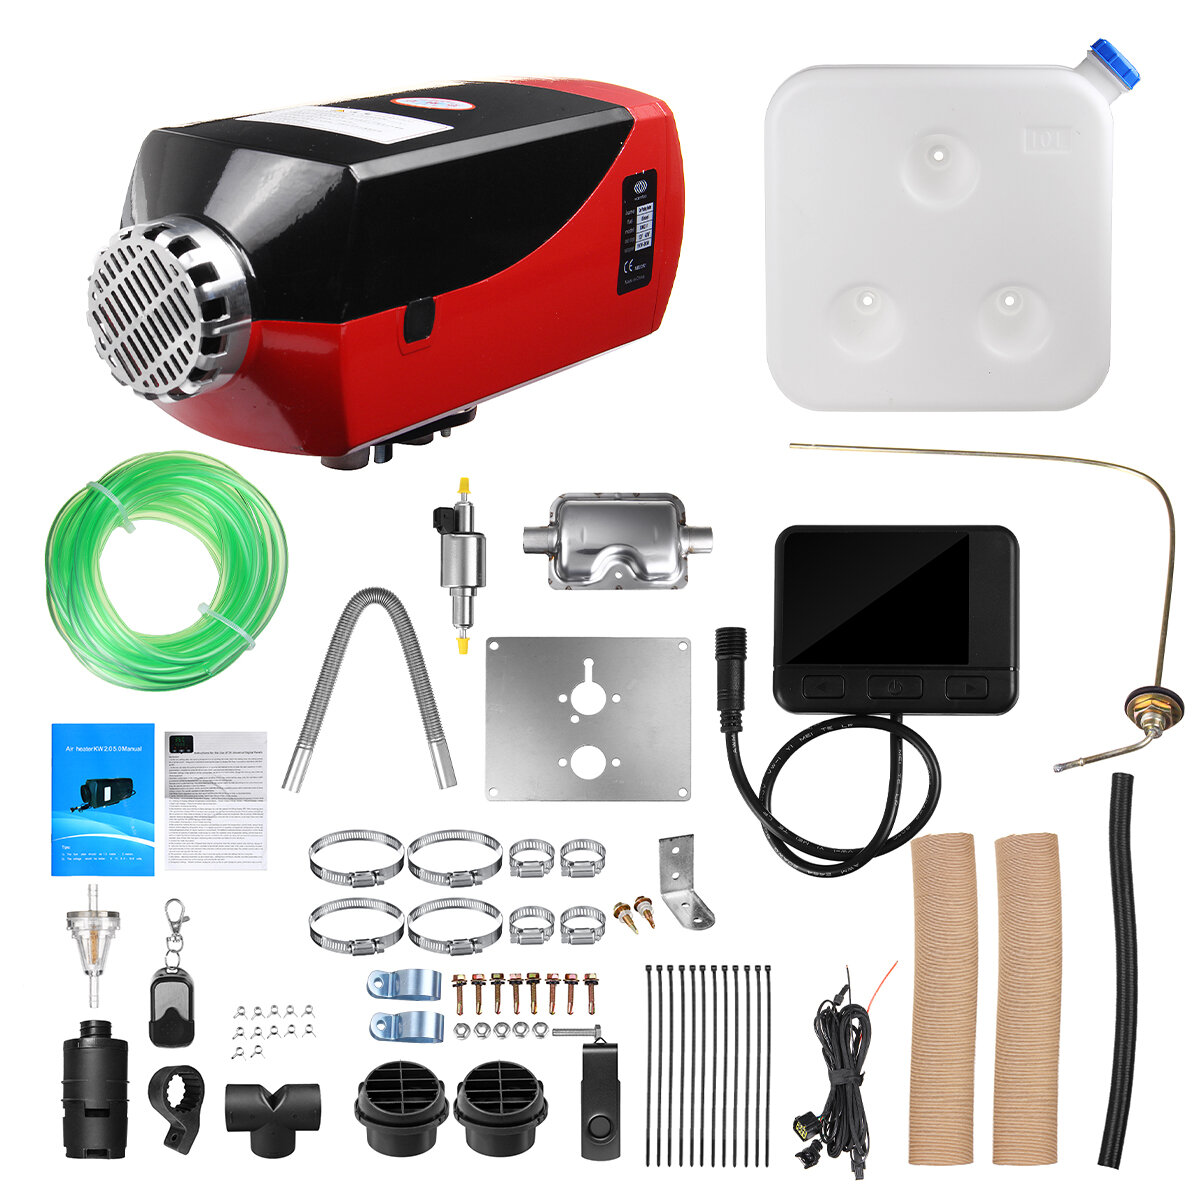 12V 8KW Diesel Air Heater All In One Car Parking Heater Black LCD Thermostat Remote Control